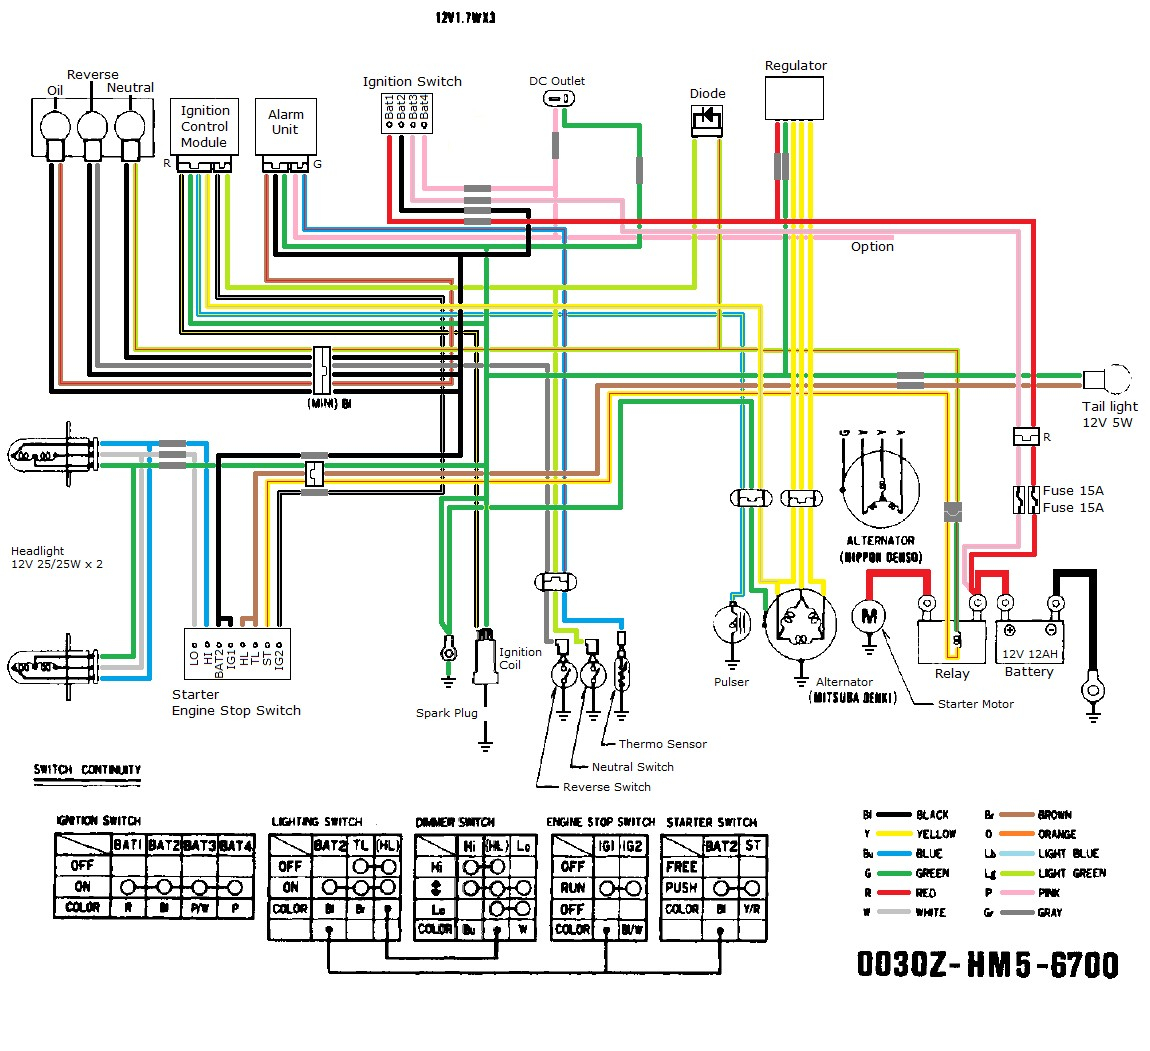 diagram] tao 110cc atv wiring diagram ata 110 b full version hd quality 110  b - carryboyphil.k-danse.fr  k-danse.fr